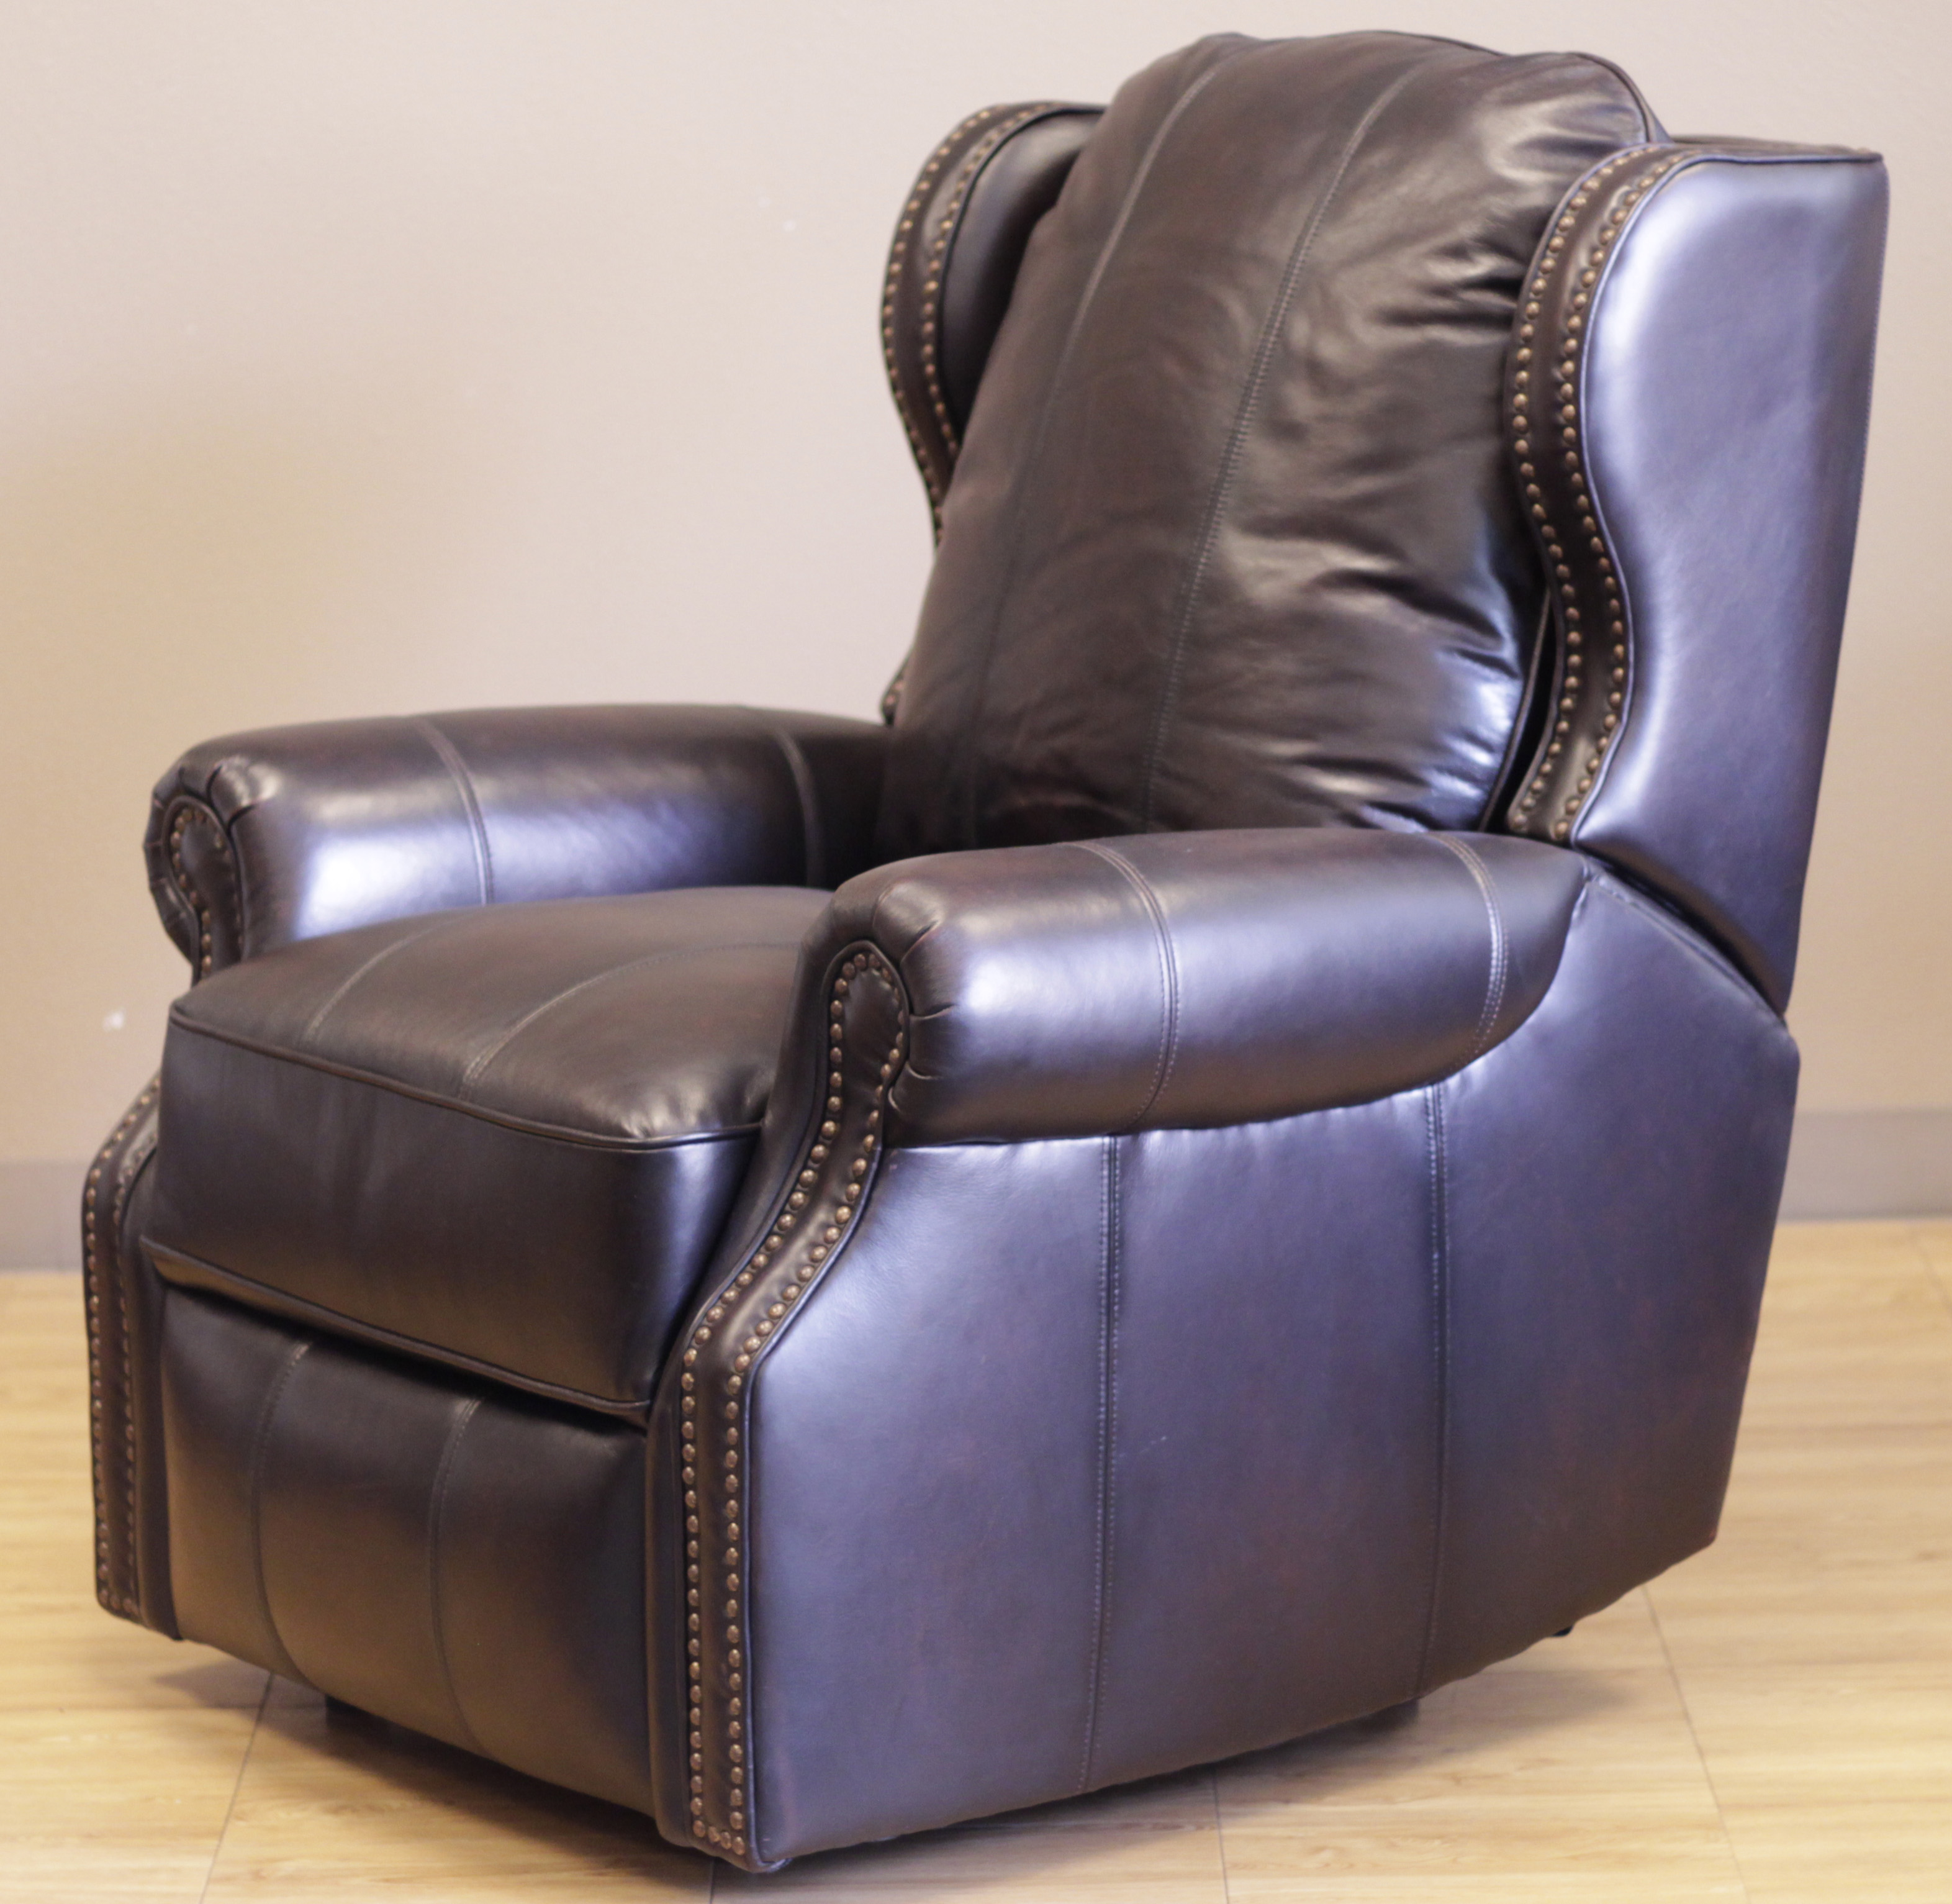 barcalounger bristol ii wall hugger recliner chair leather rh vitalitywebb com